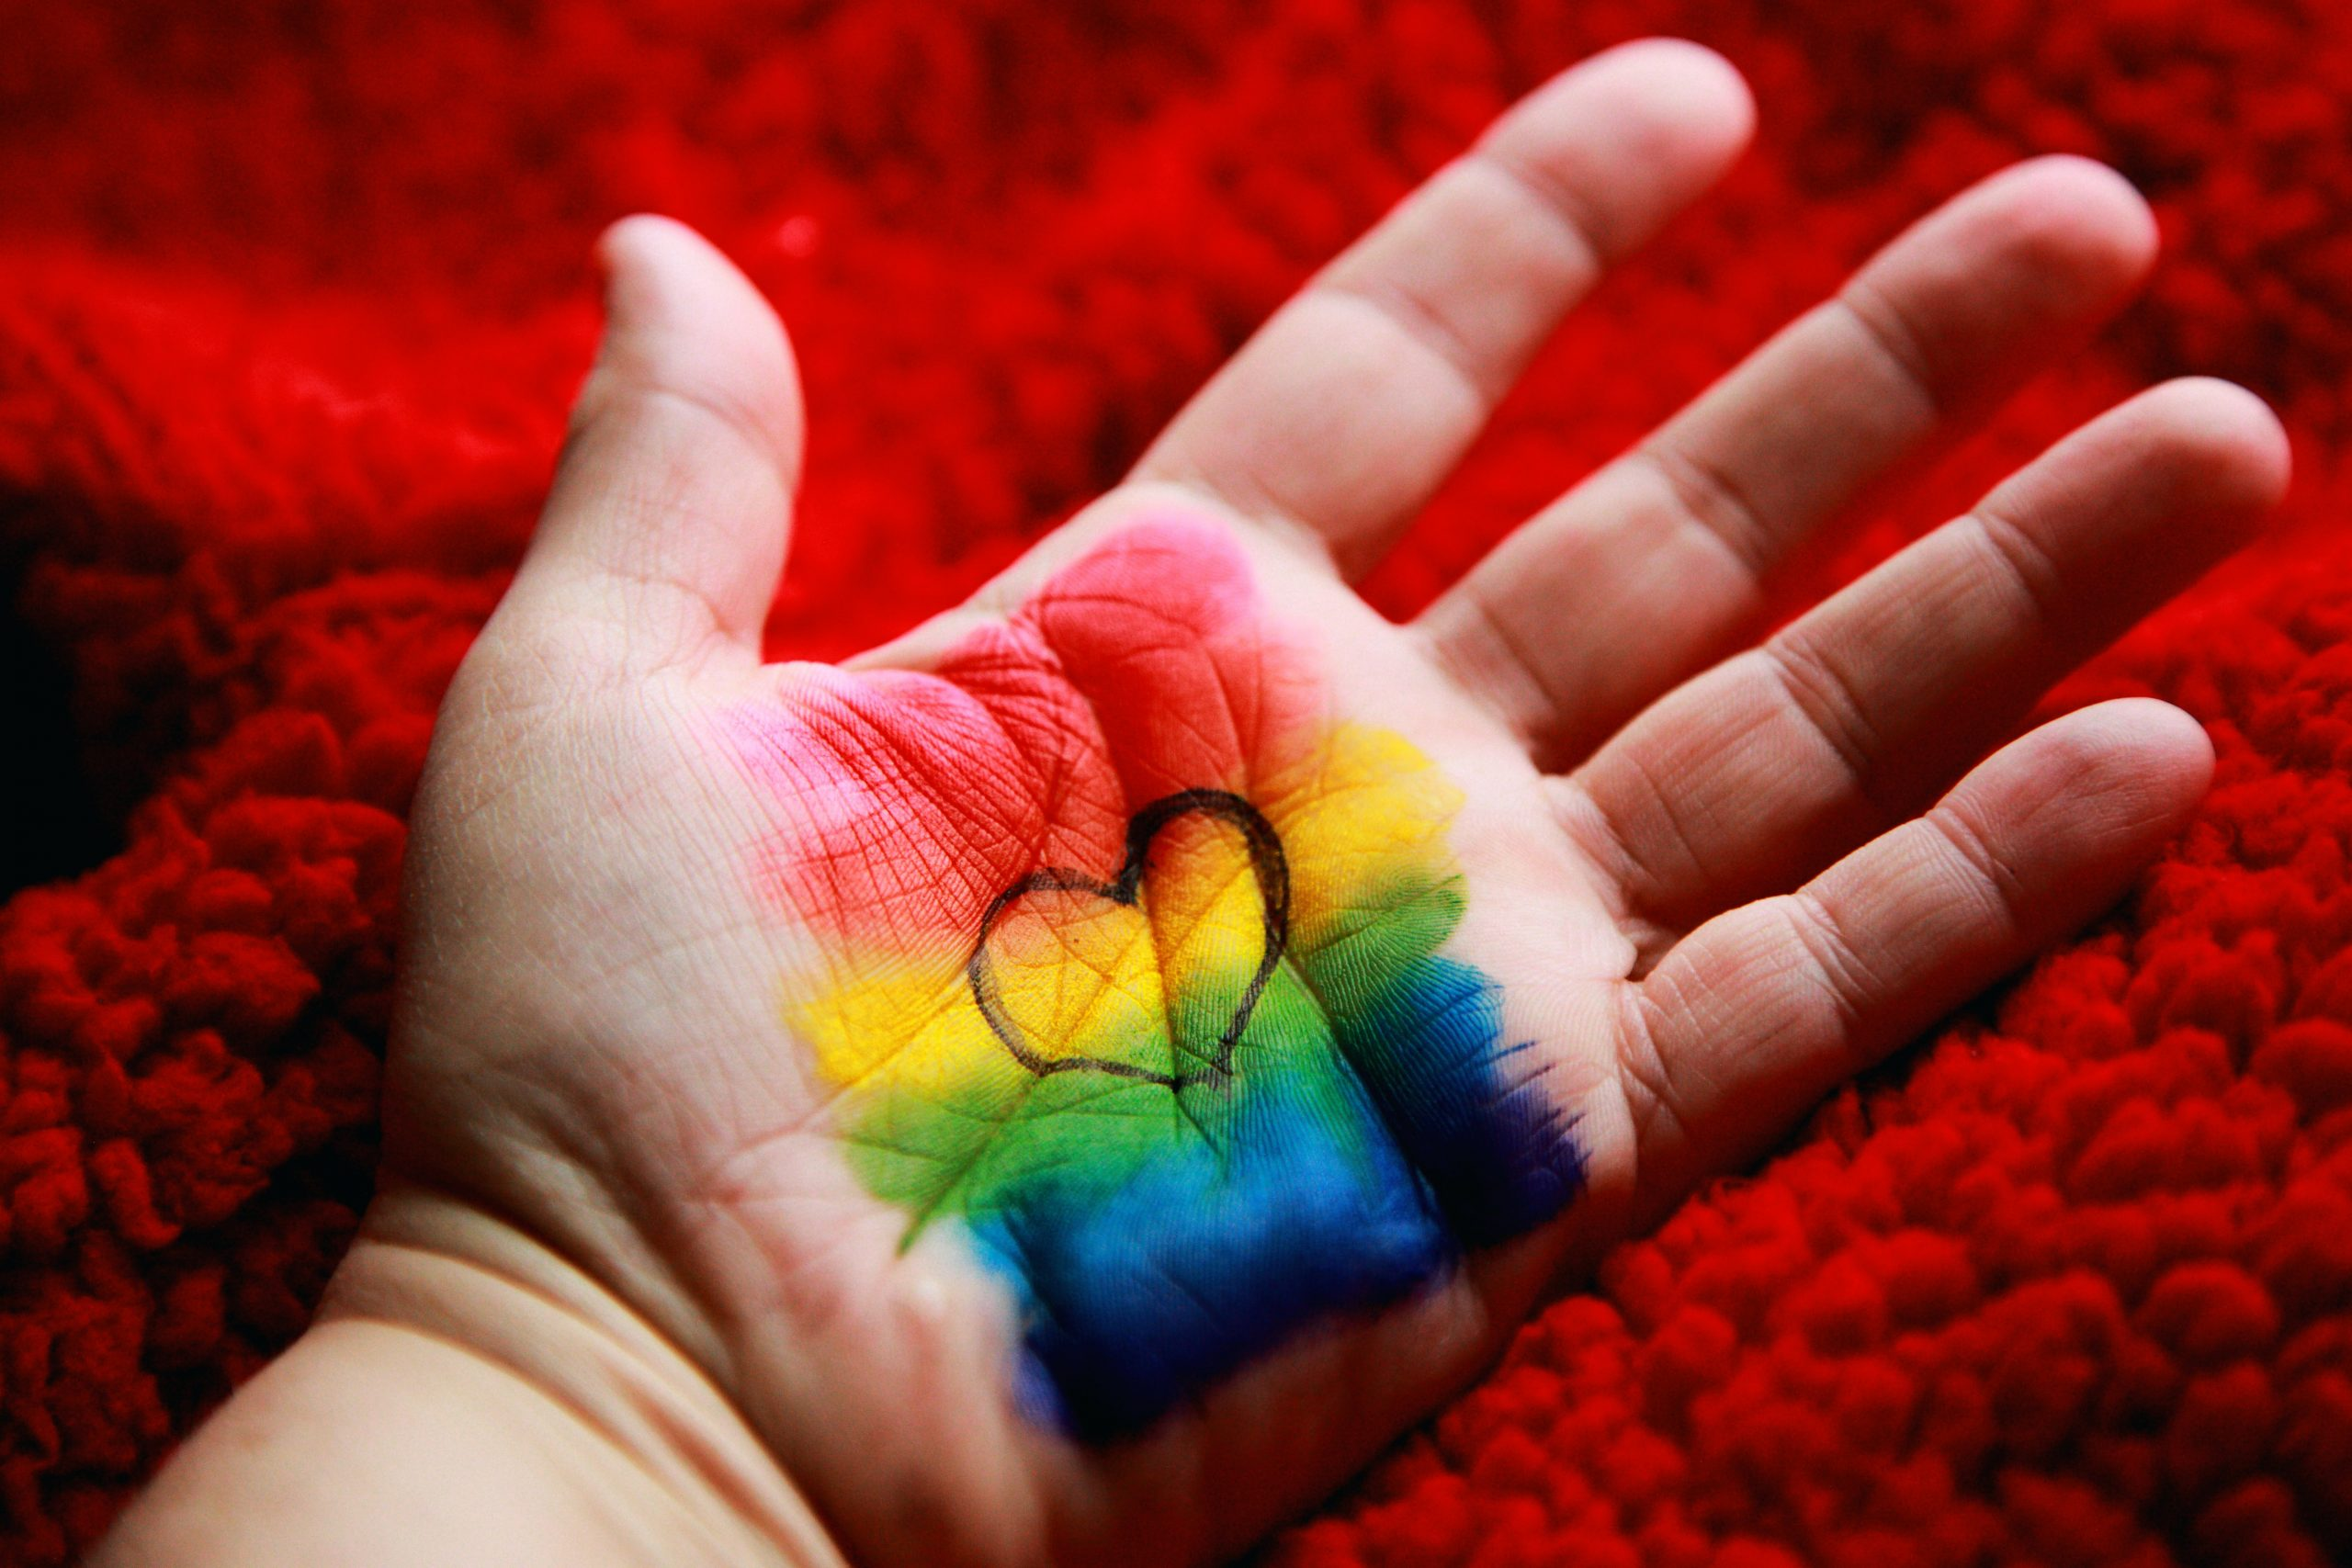 A close-up photo of a person's hand in front of a red carpet, with a rainbow and heart drawn on it.